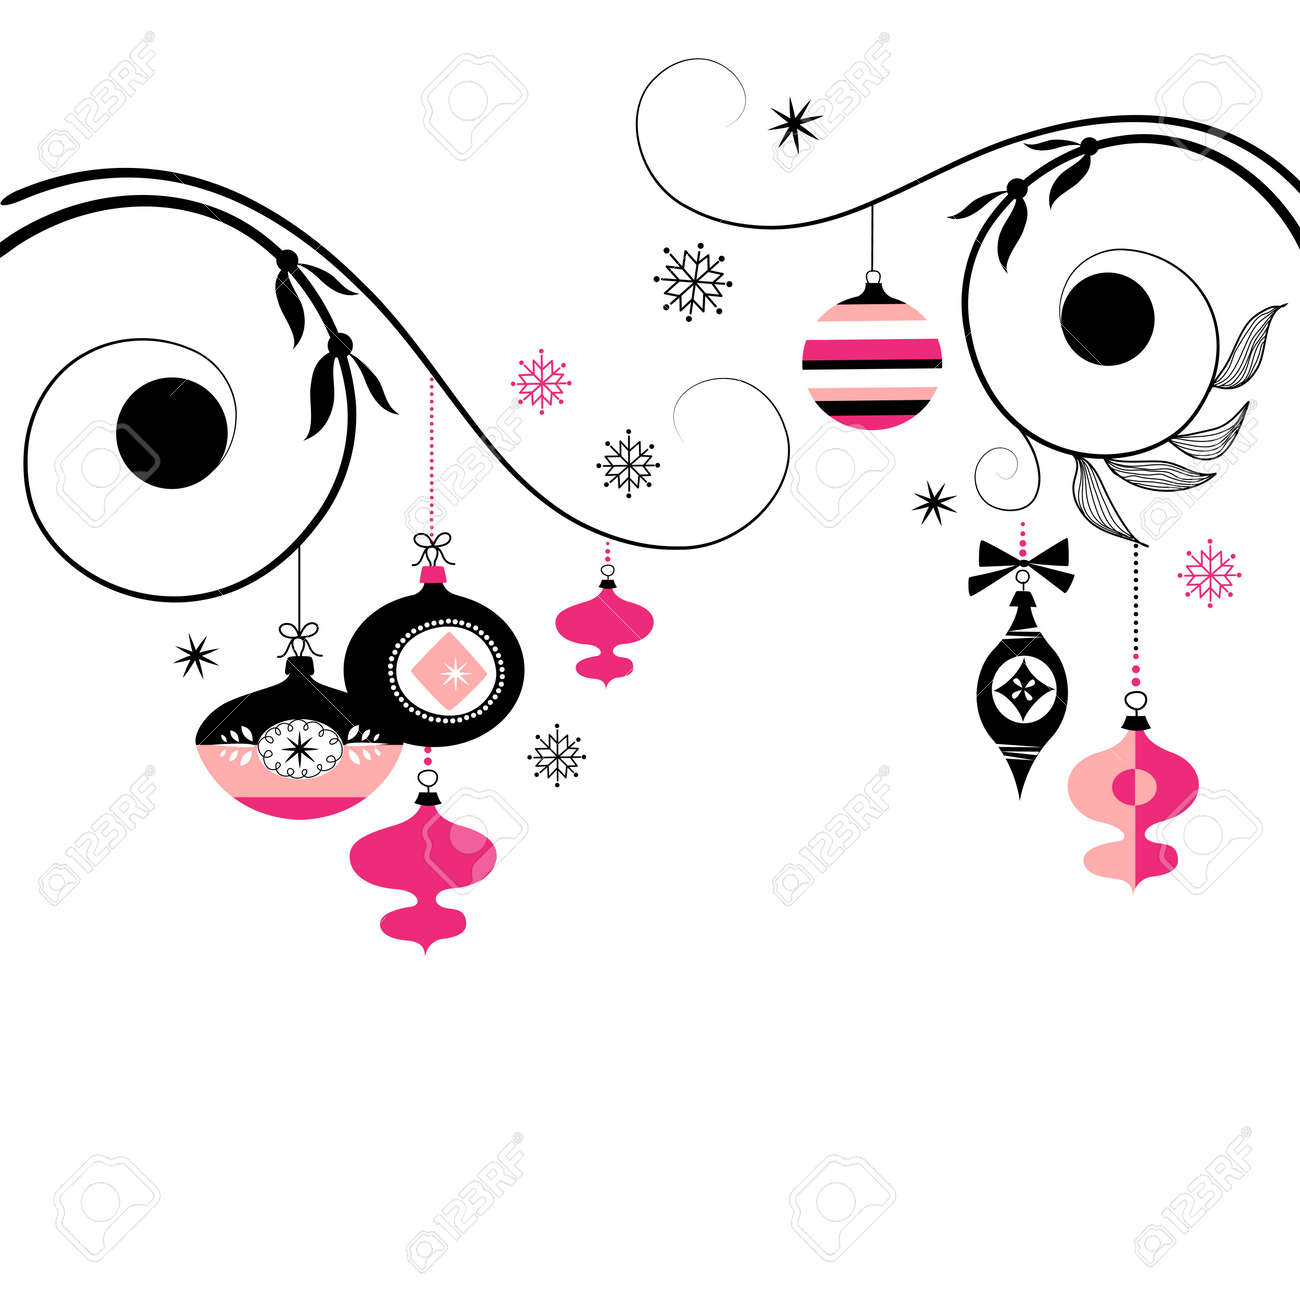 Black and white ornaments - Black And Pink Christmas Ornaments Stock Vector 11150329